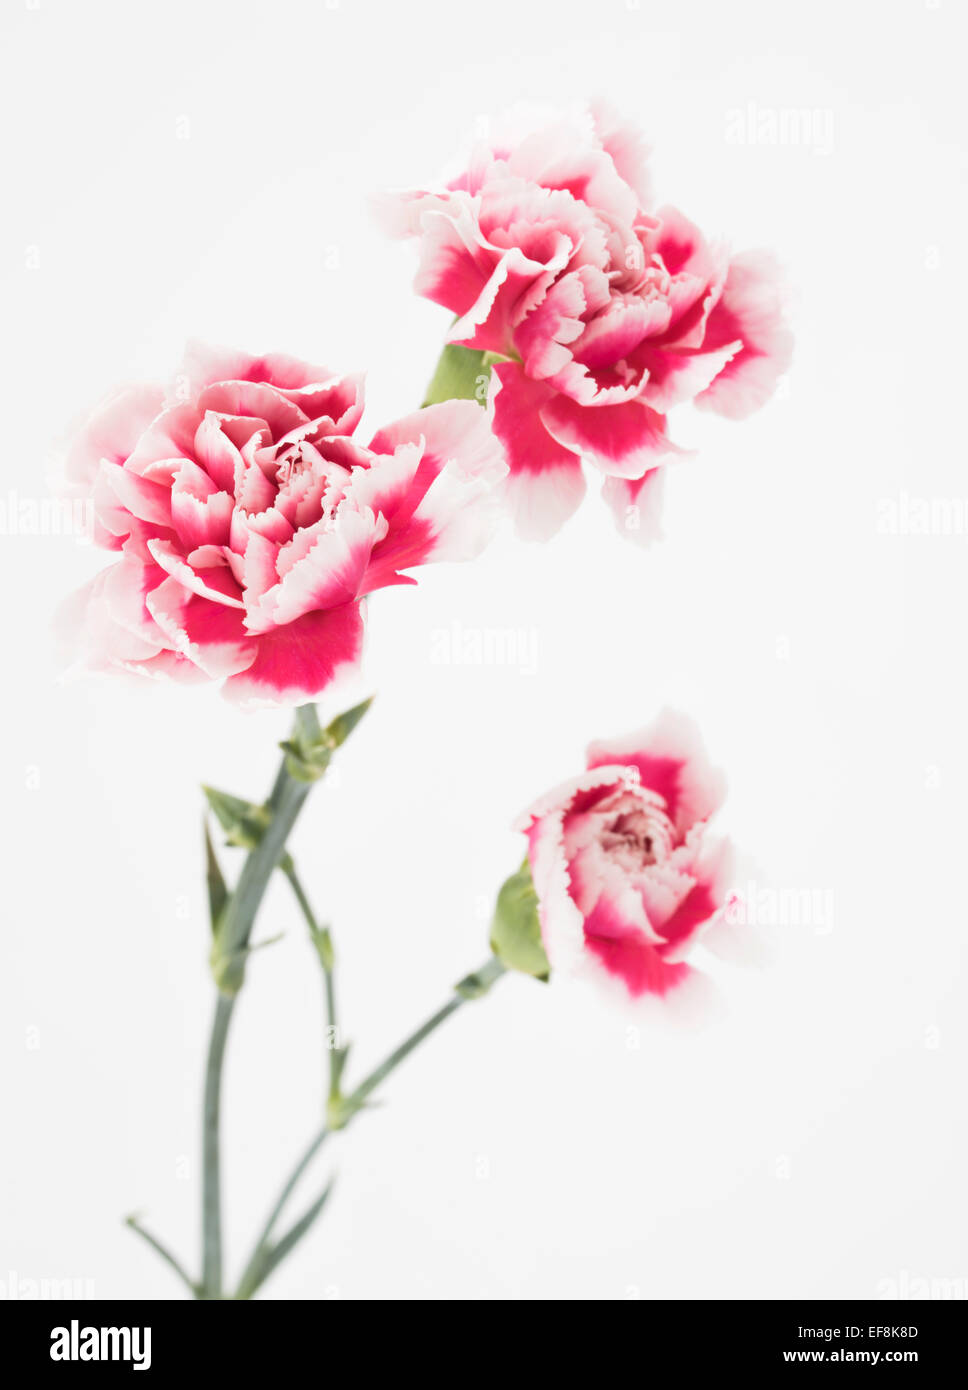 Pink and white carnation. Dianthus caryophyllus, carnation or clove pink - Stock Image